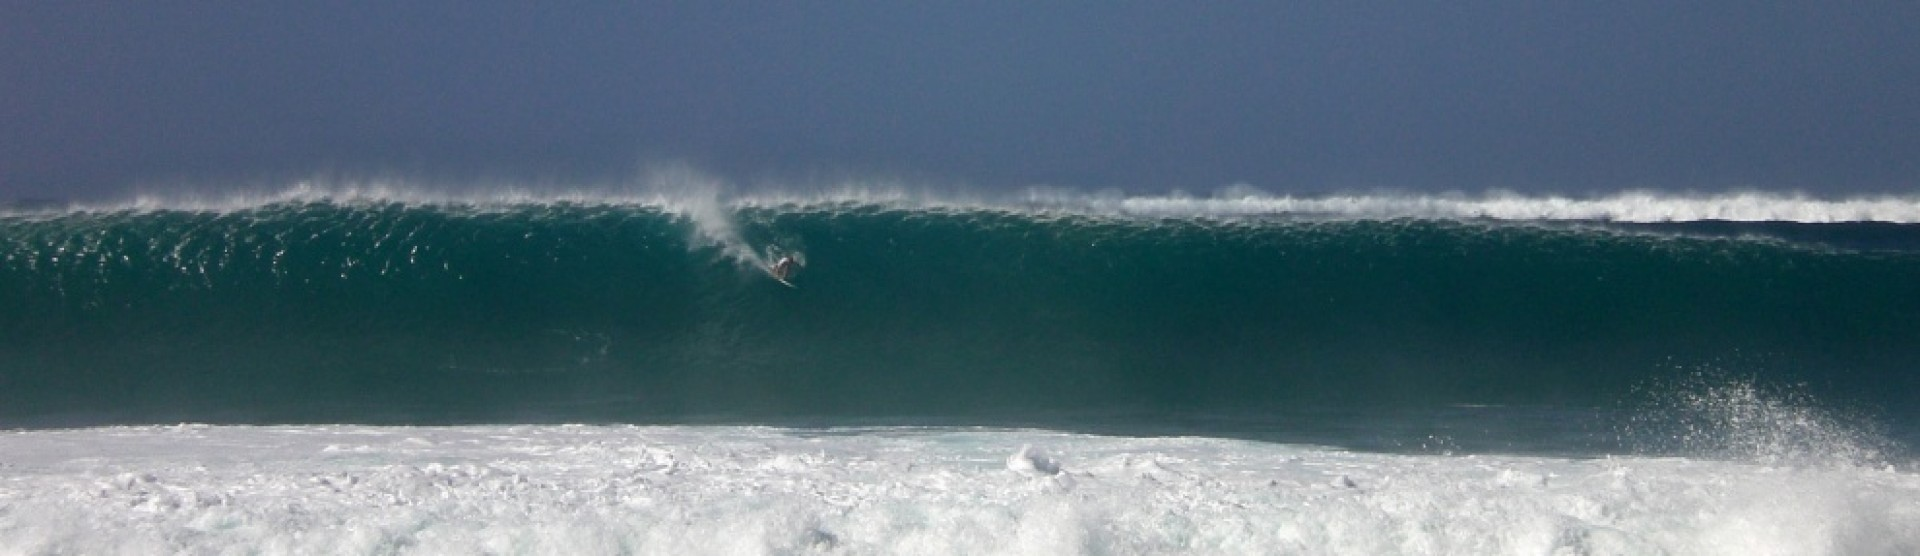 Ryry's photo of Pipeline & Backdoor